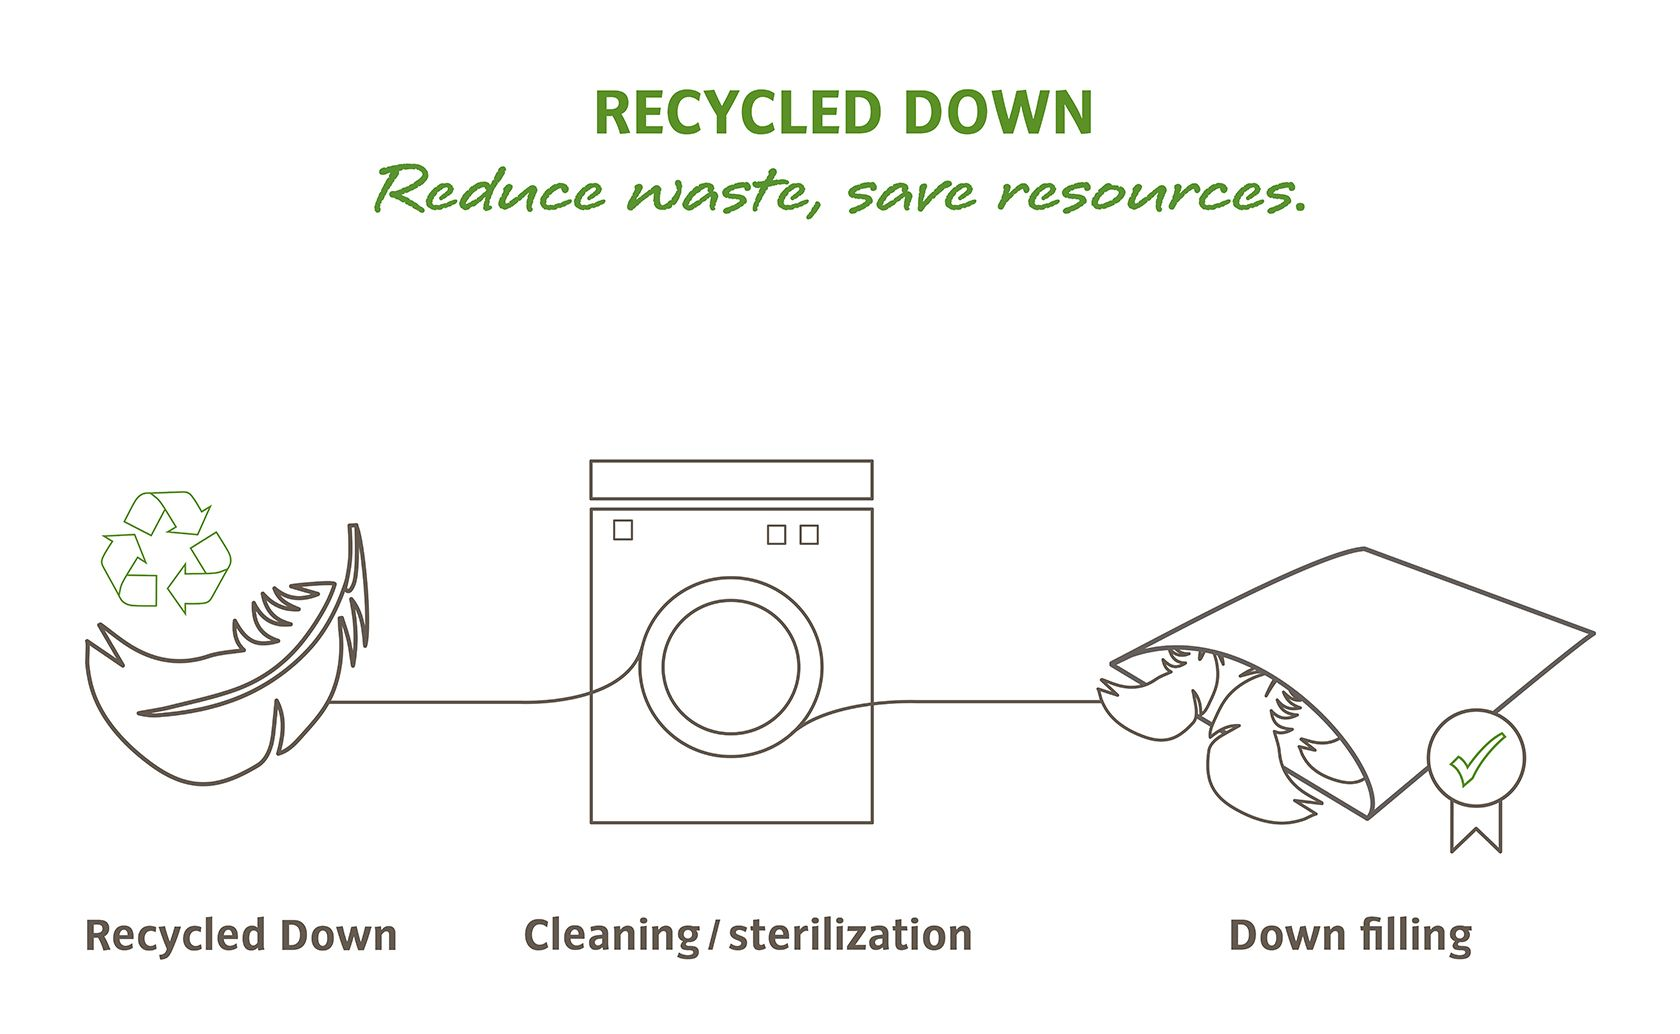 Recycled Down